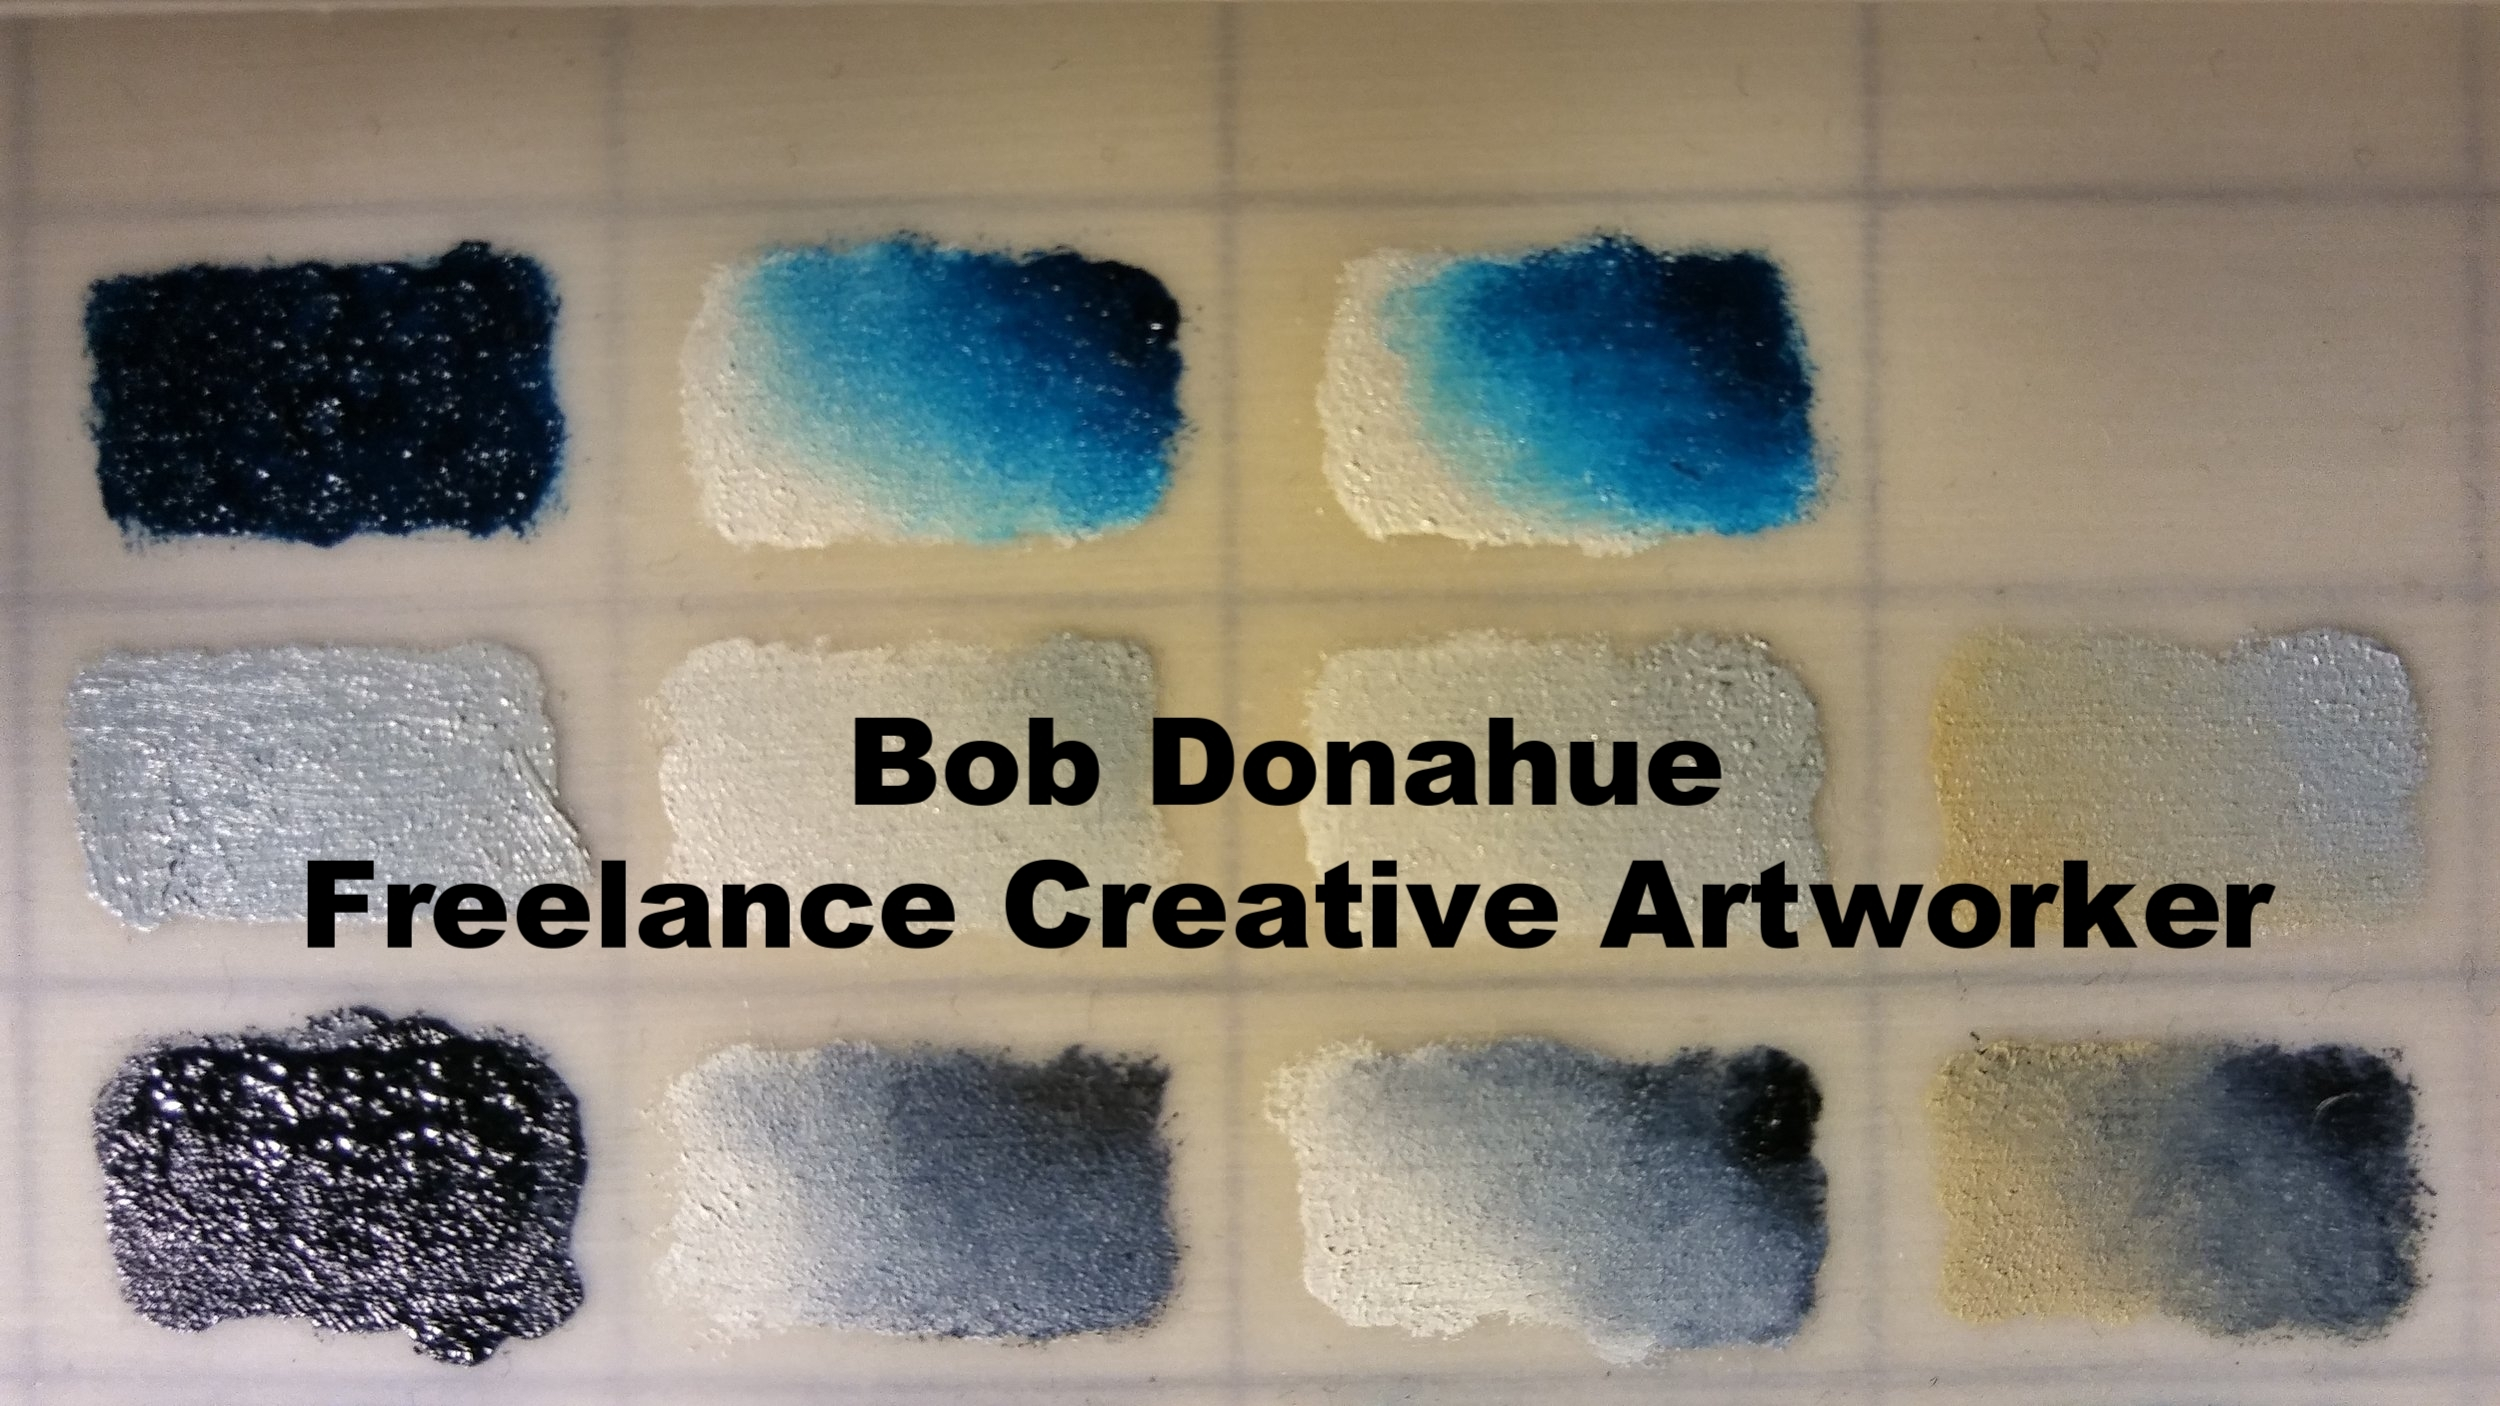 Bob_Donahue_Freelance_Creative_Artworker.jpg